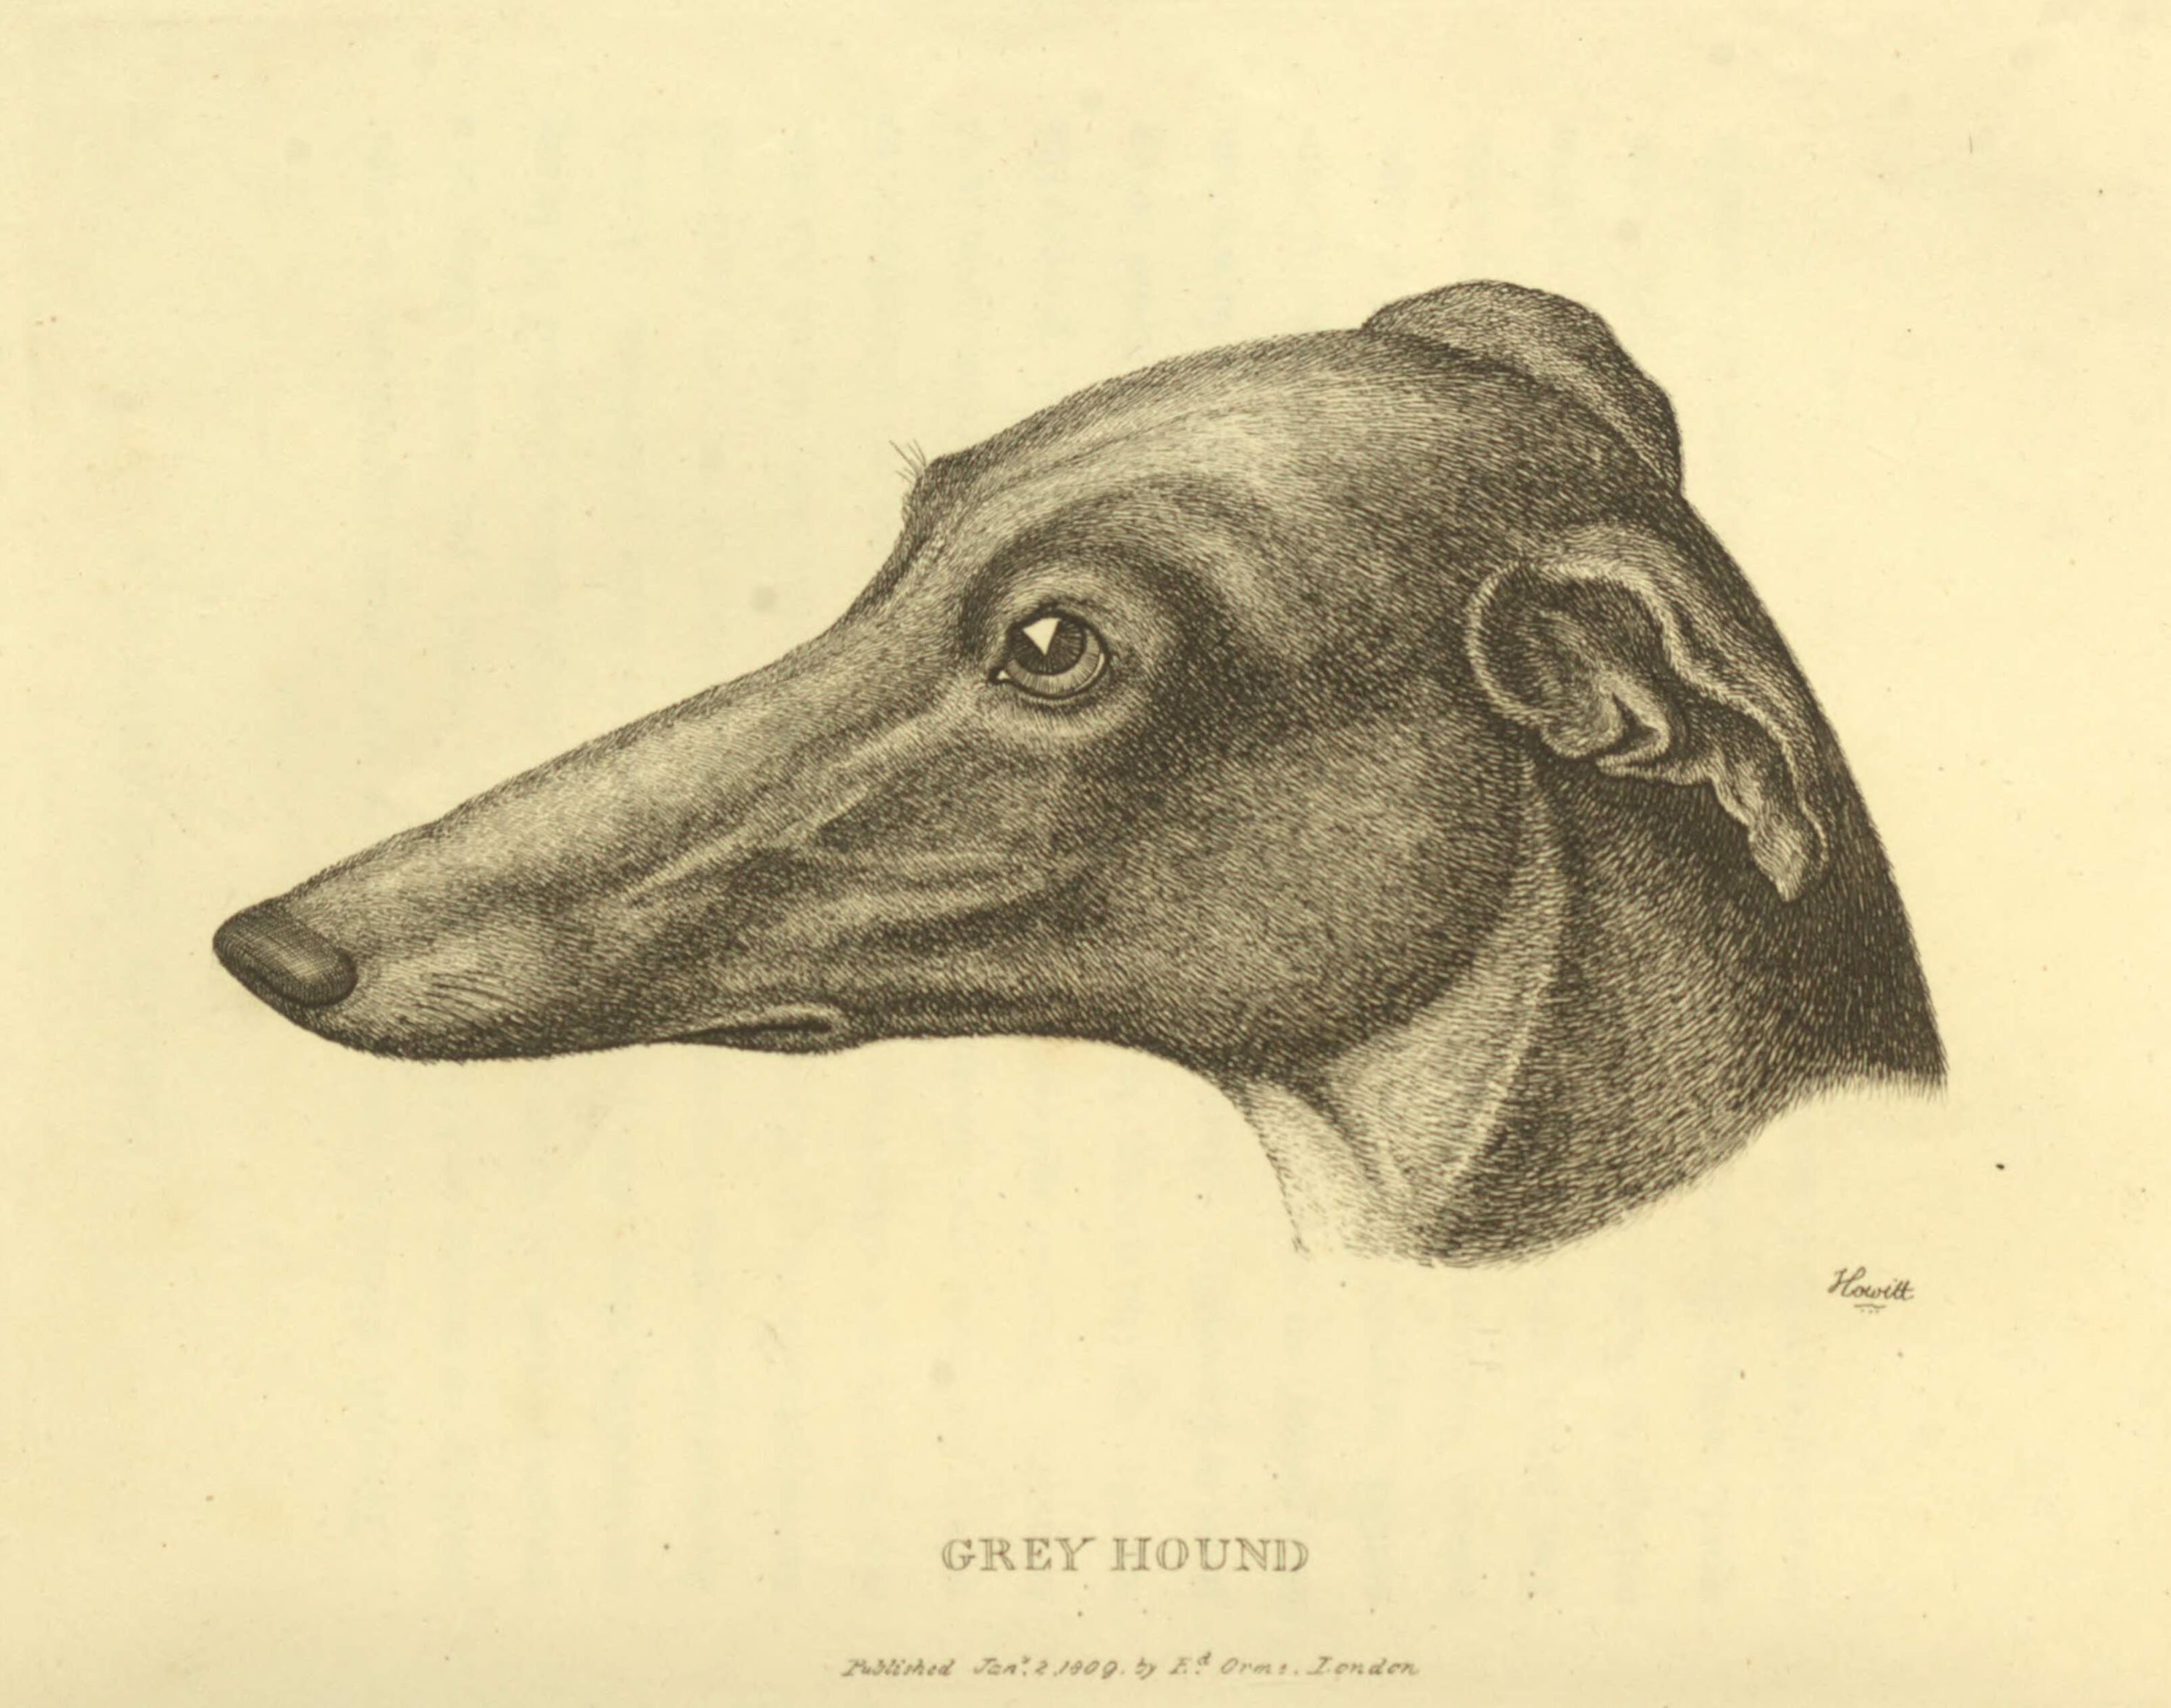 greyhound-profile-rawscan